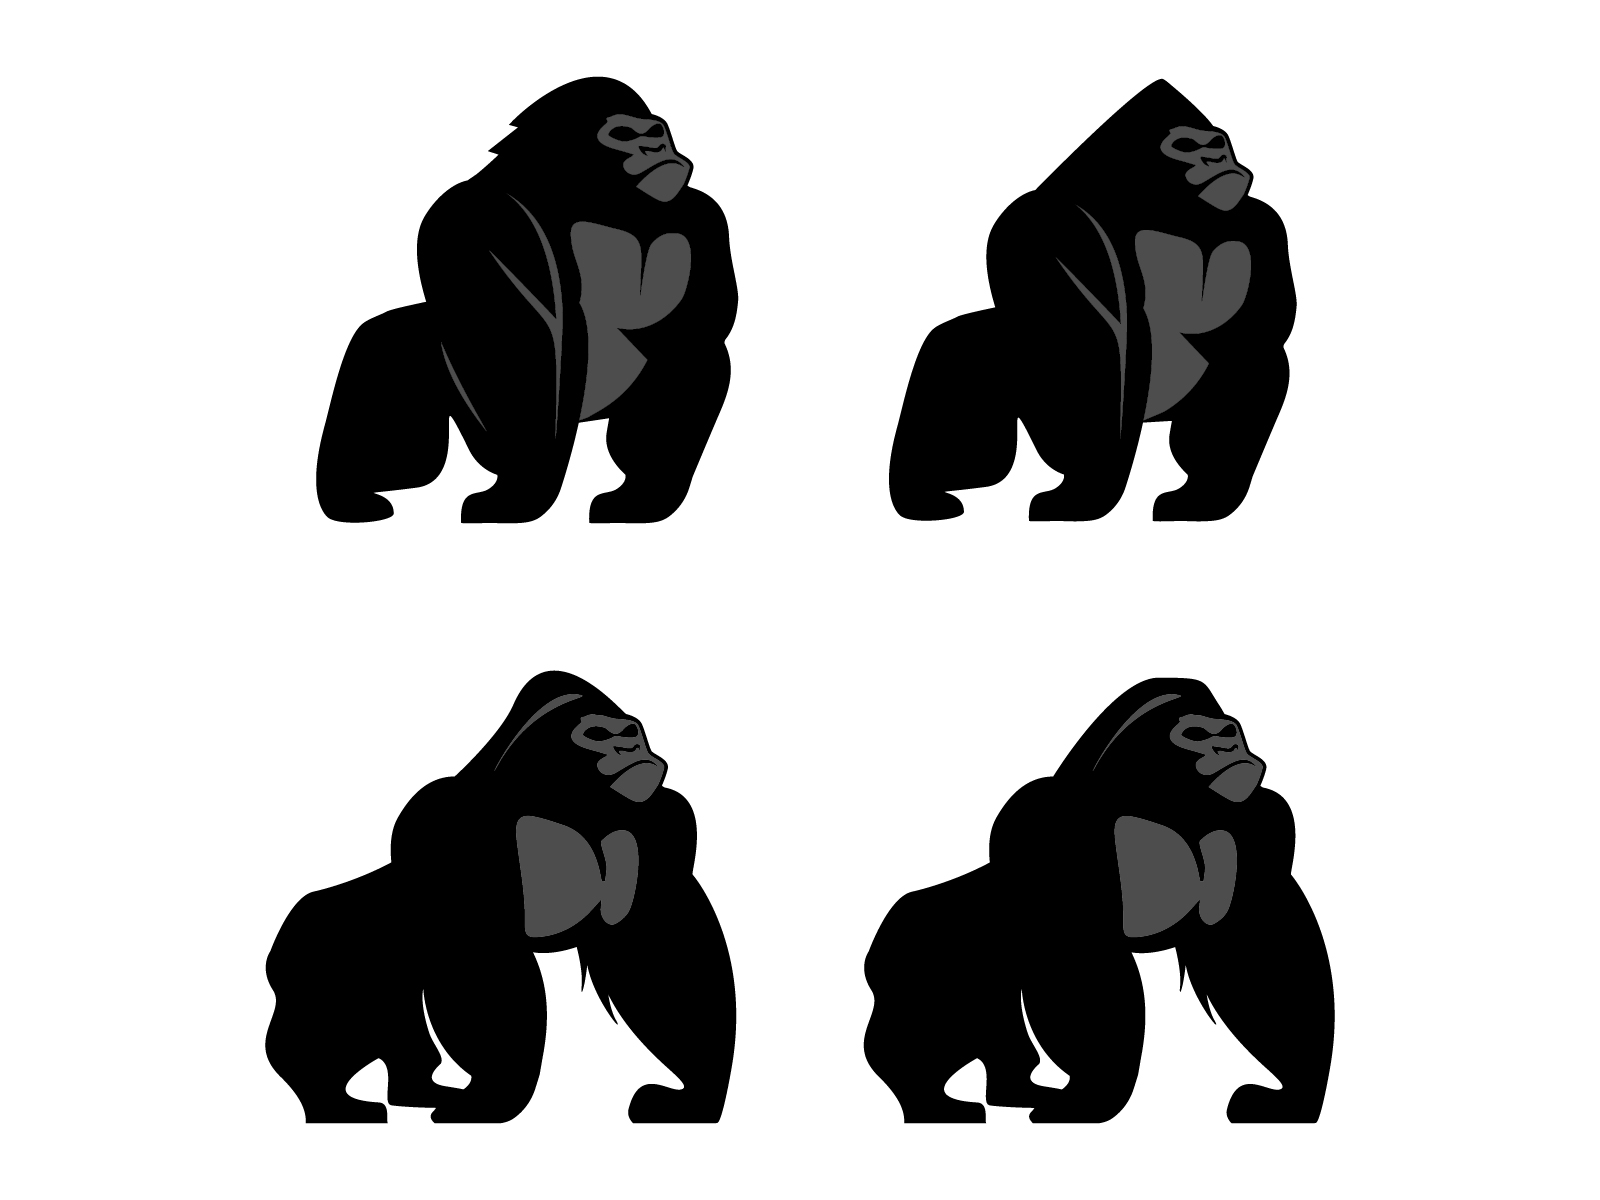 Download Free Gorilla Vector Graphic By Jprintgrafika Creative Fabrica for Cricut Explore, Silhouette and other cutting machines.